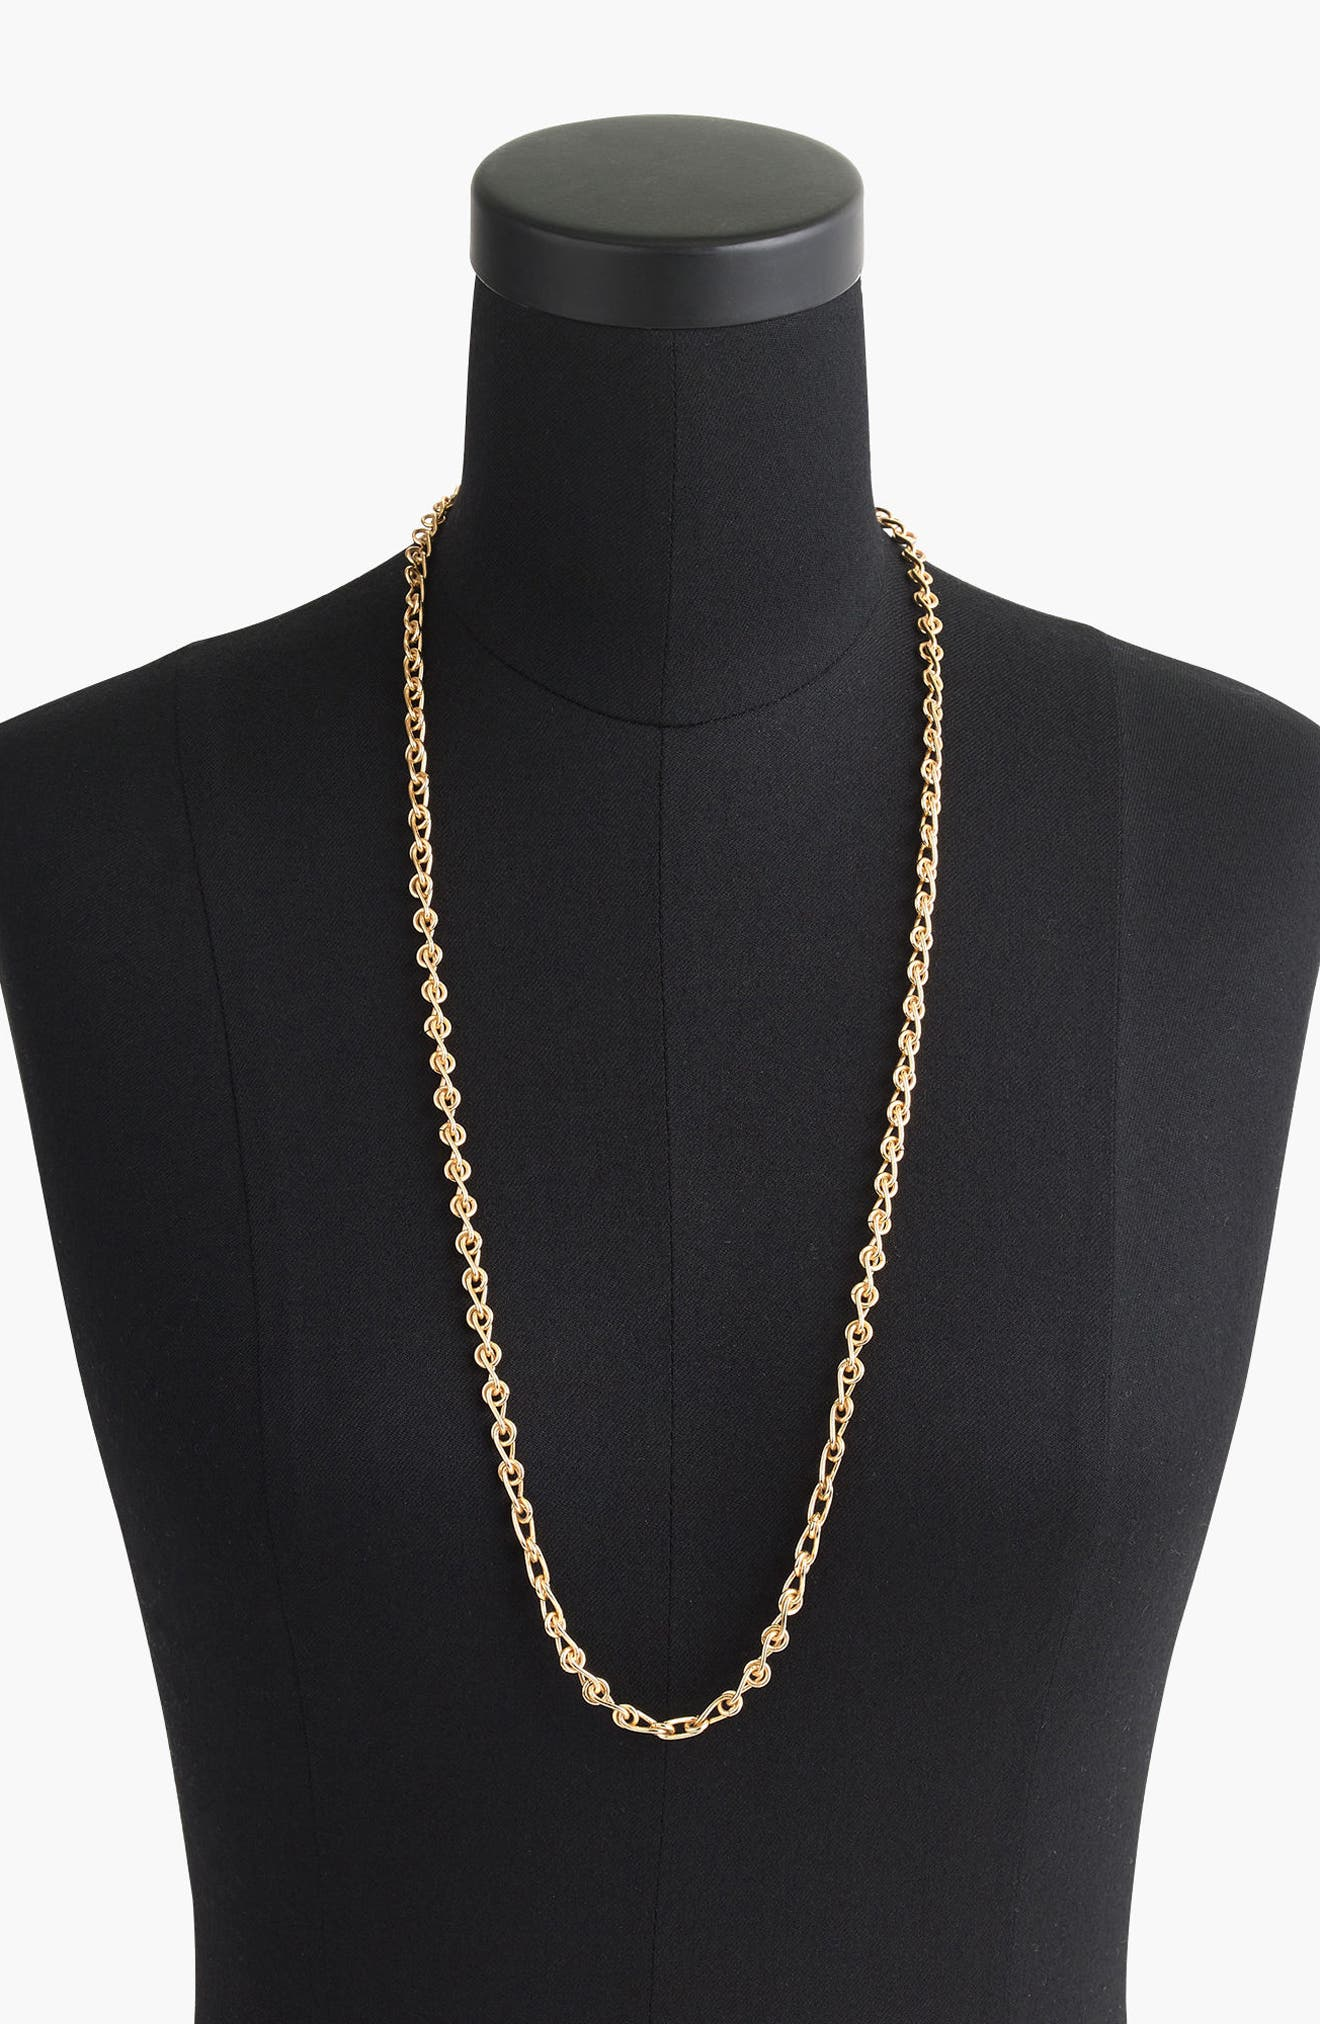 Main Image - J.Crew Chain Link Lariat Necklace